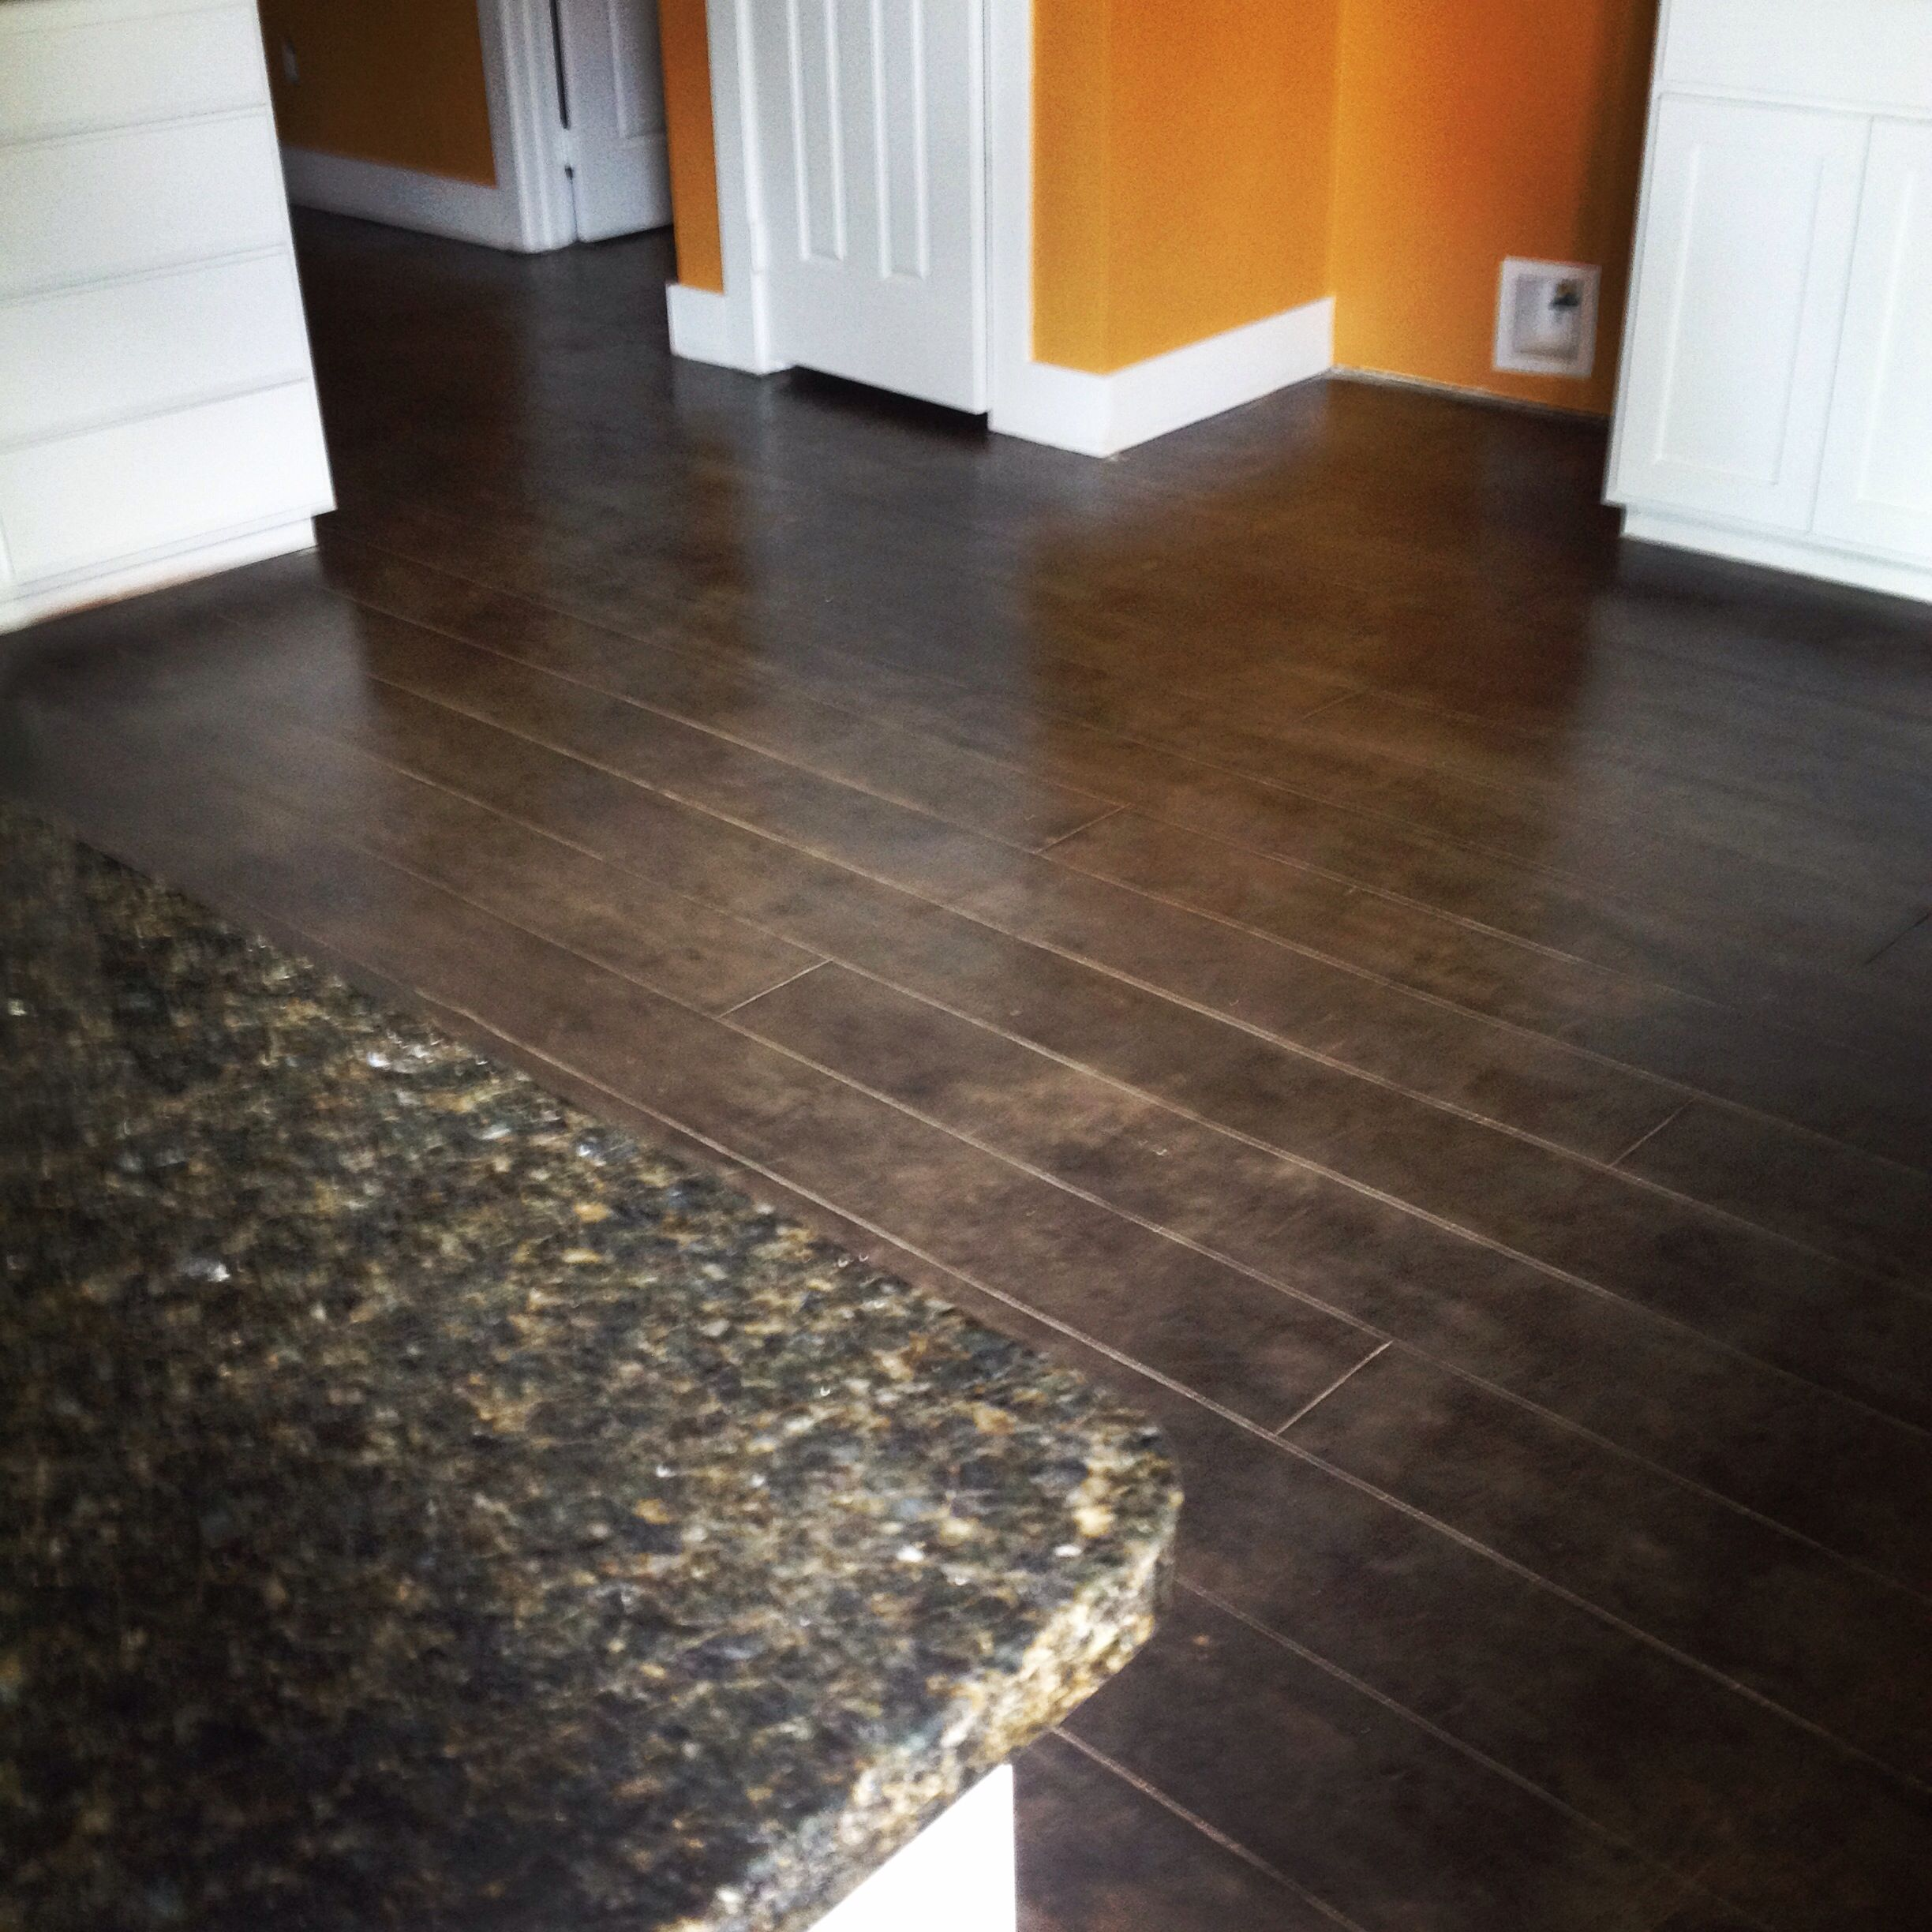 Scored & stained concrete We used black stain & a flat sealer